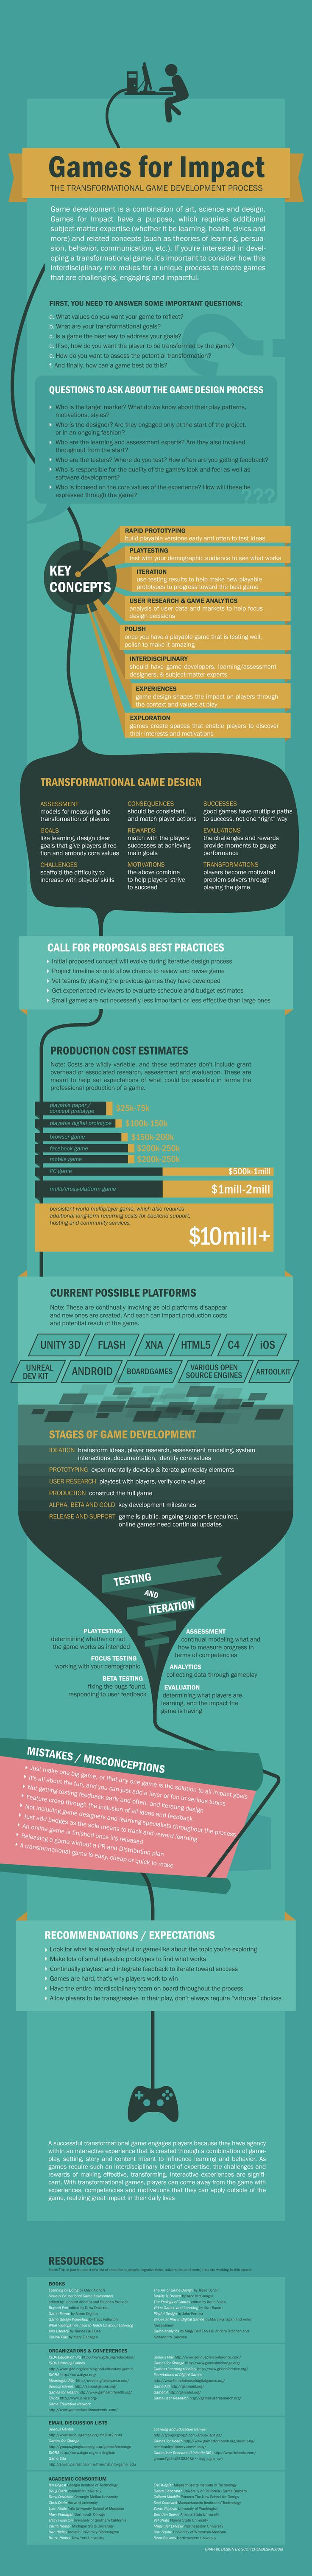 Games for Impact: The transformational game development process #gaming #gbl